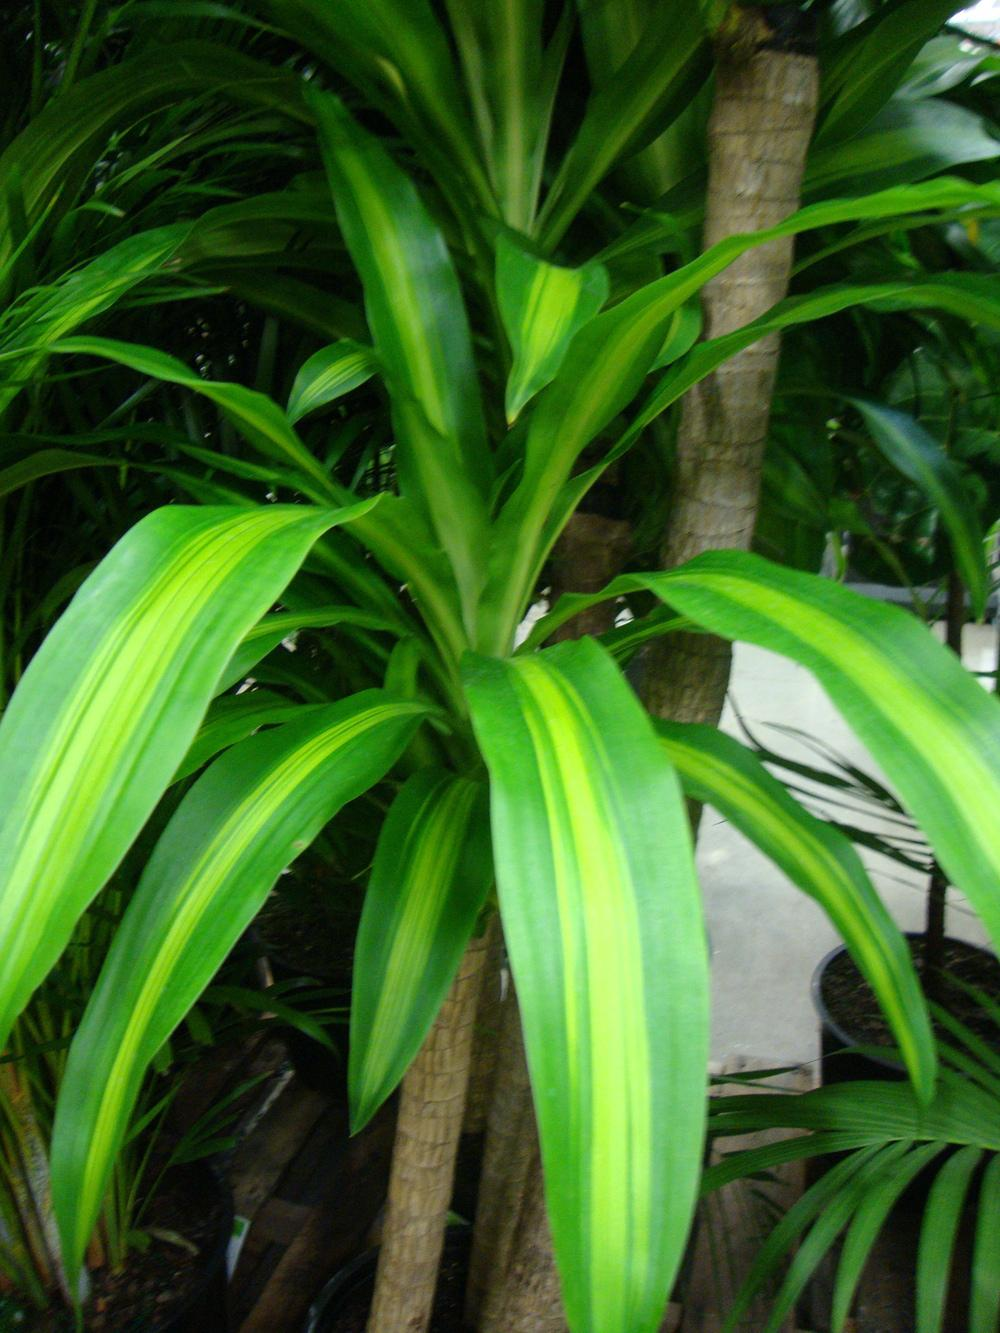 Photo Of The Entire Plant Of Mass Cane Dracaena Fragrans